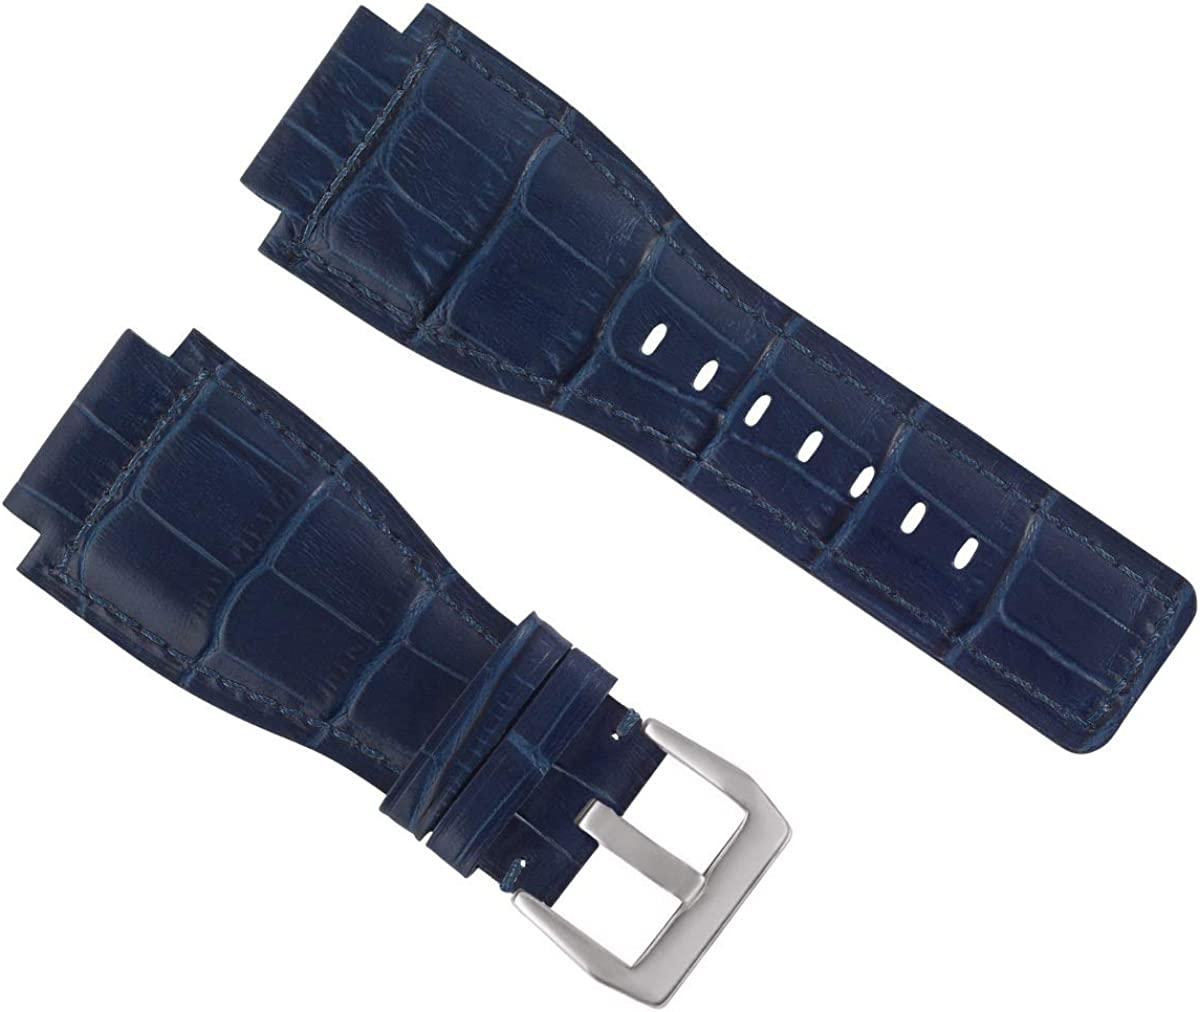 New 24mm Tucson Mall Leather Watch Band Strap with Bell Compatible Some reservation Br Ross